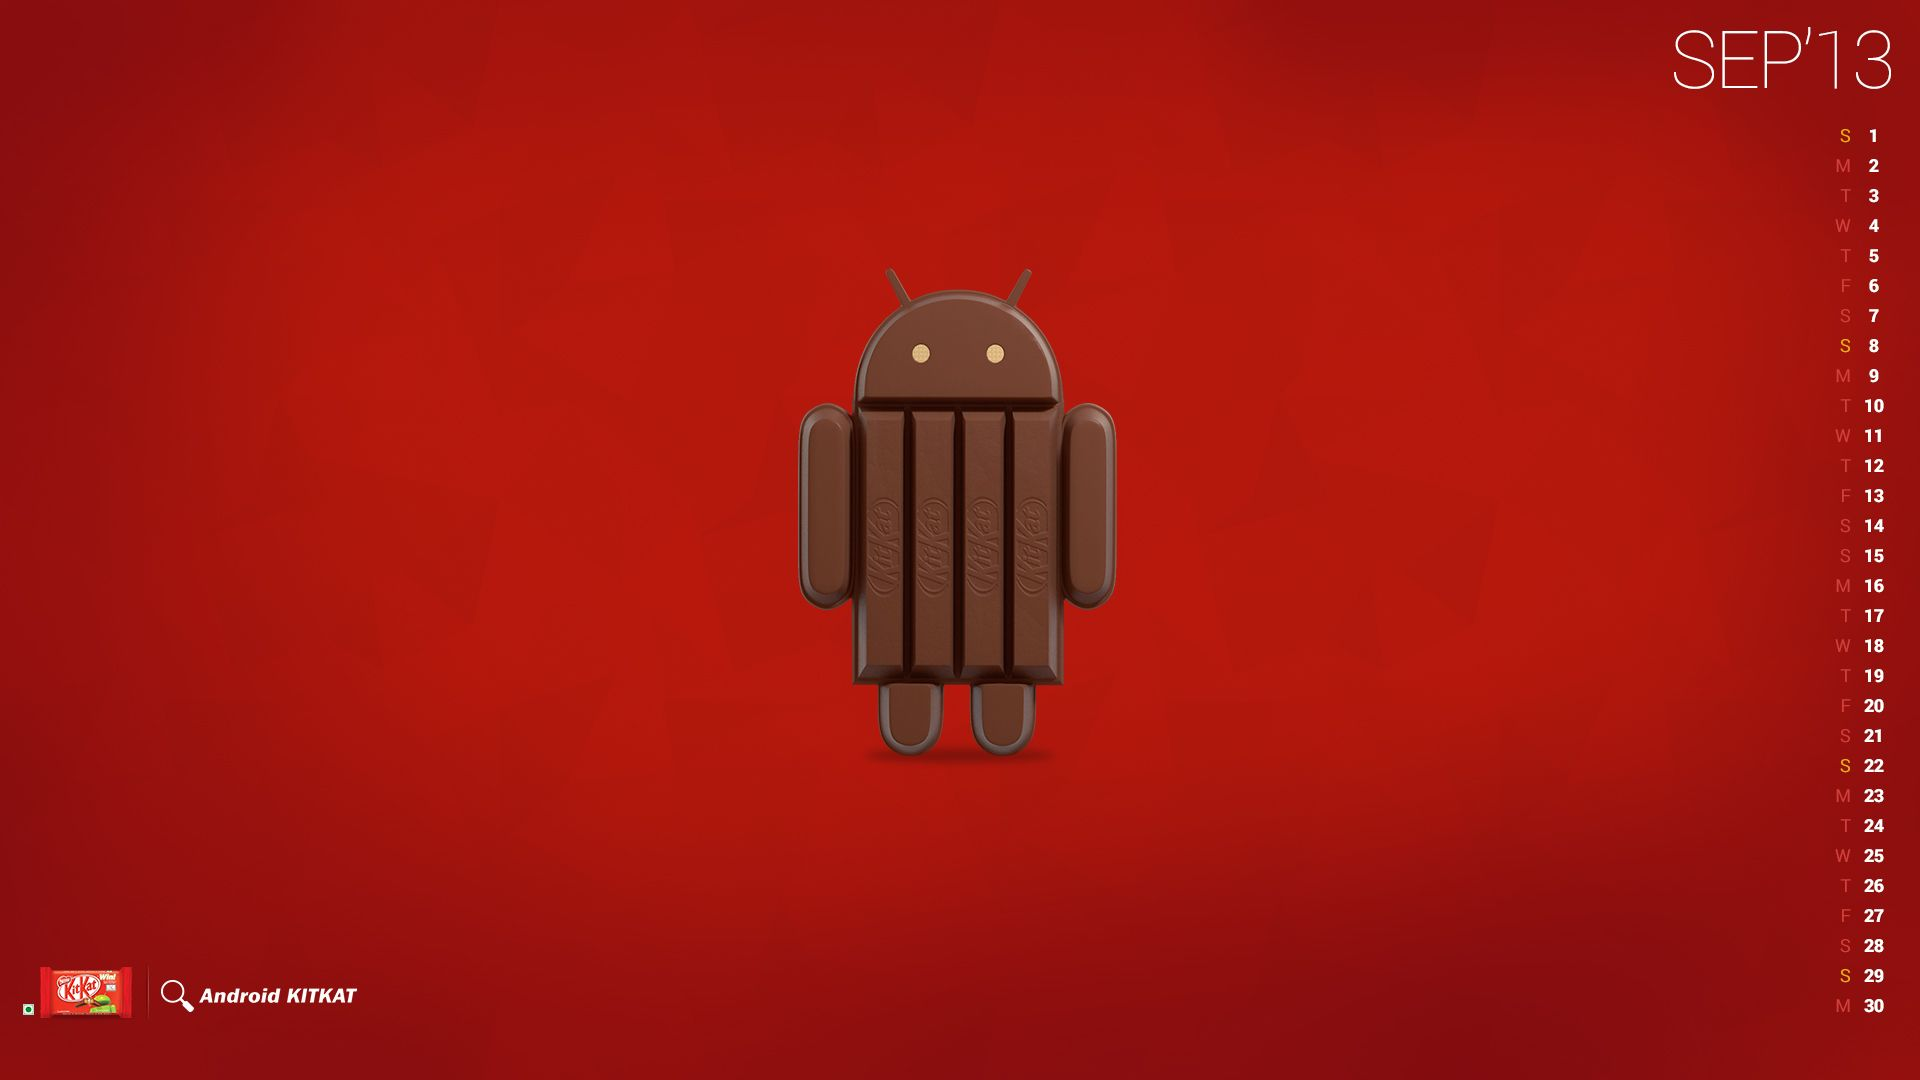 Wallpaper Android 44 Kitkat